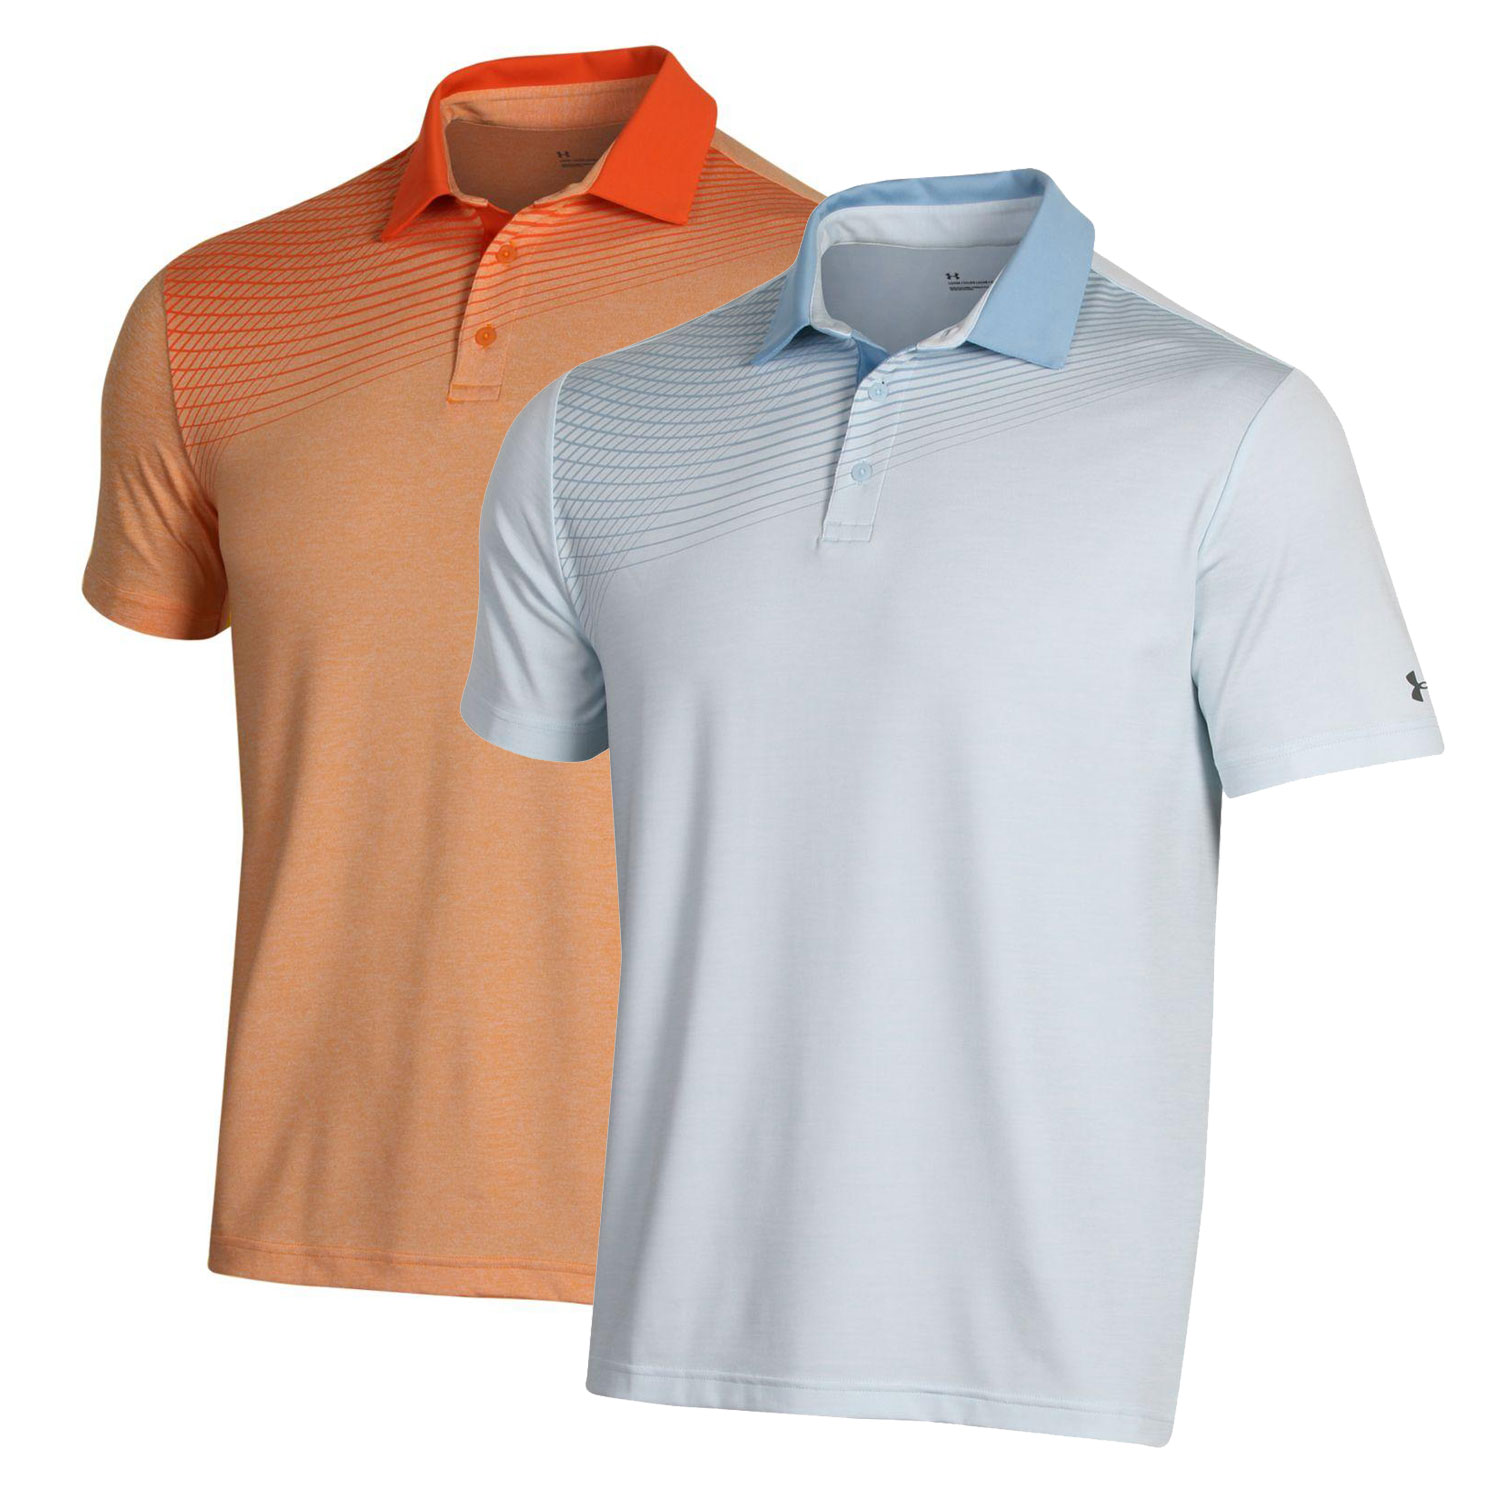 Under Armour Men's Playoff 2.0 Backswing Polo